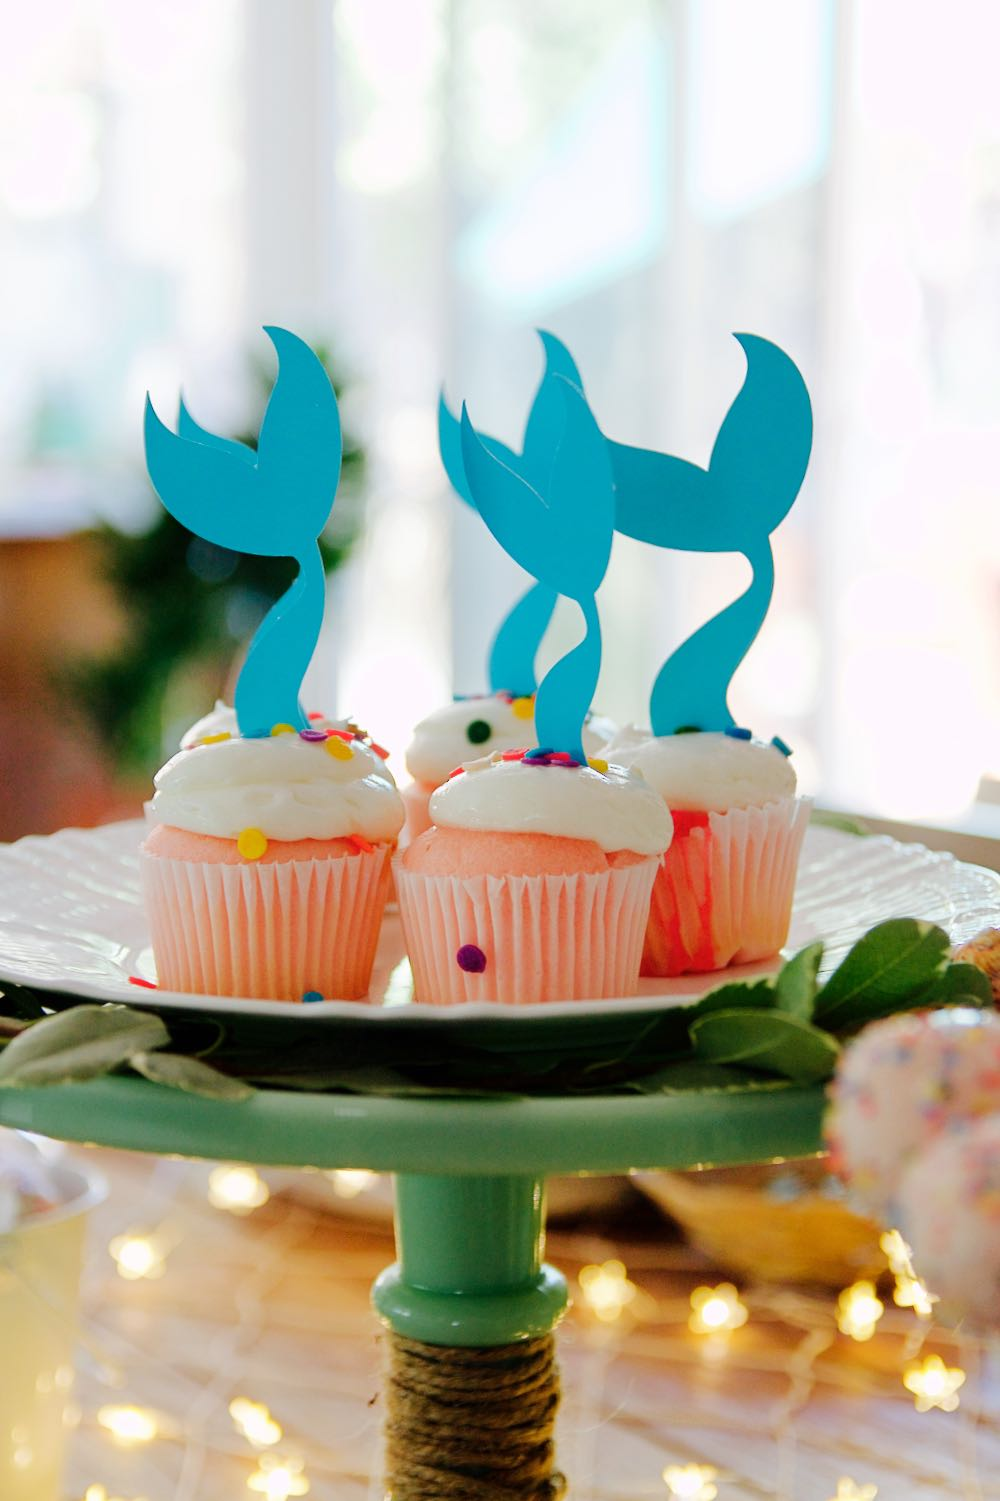 Adorable whale tale accessories for cupcakes